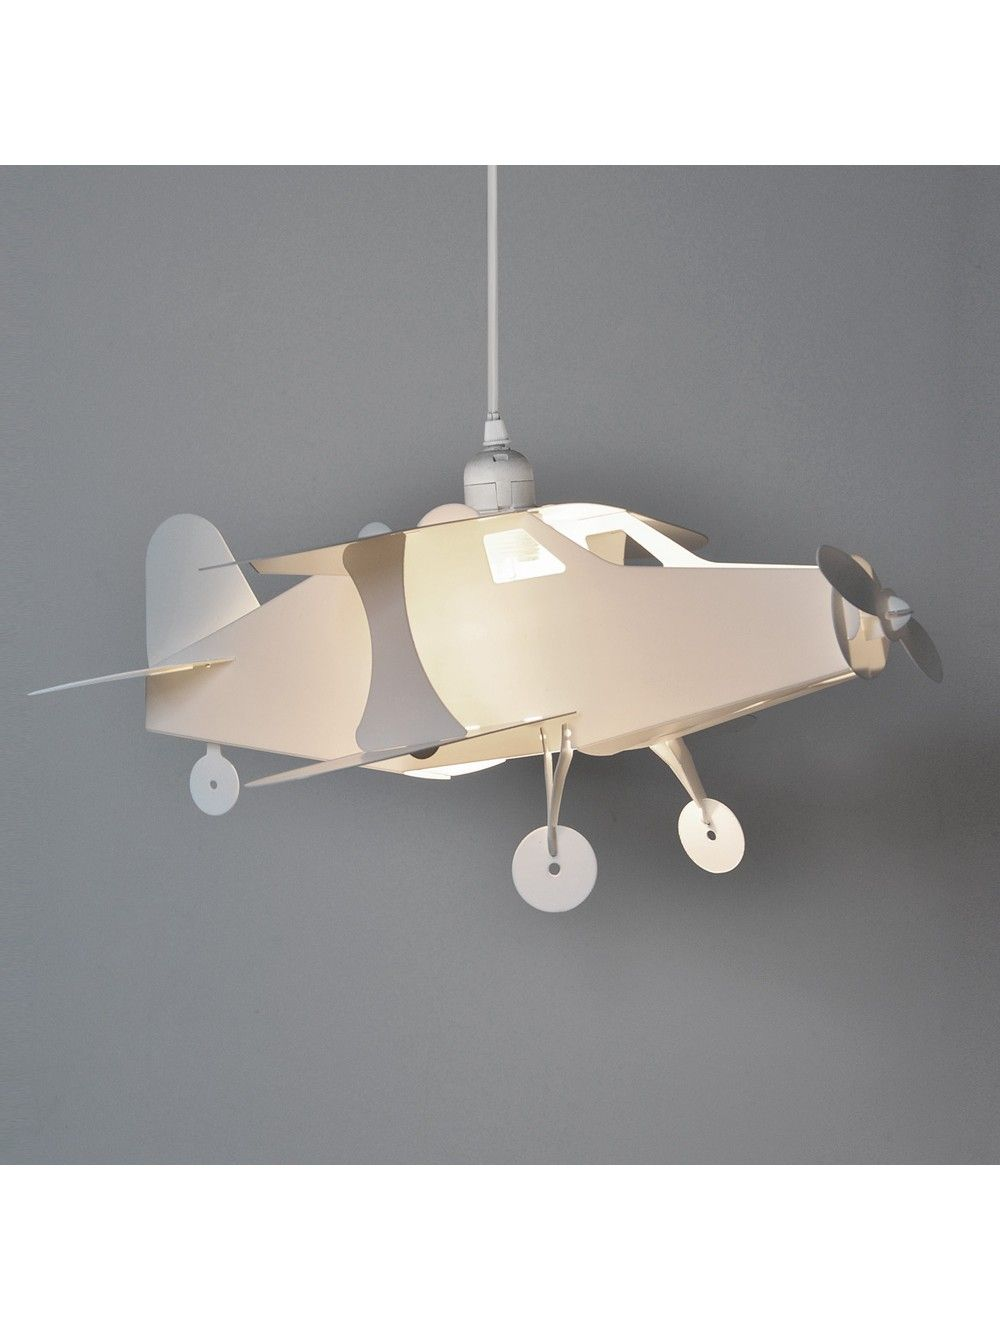 Children\'s Bedroom Aeroplane Pendant Ceiling Shade | Ideas for the ...